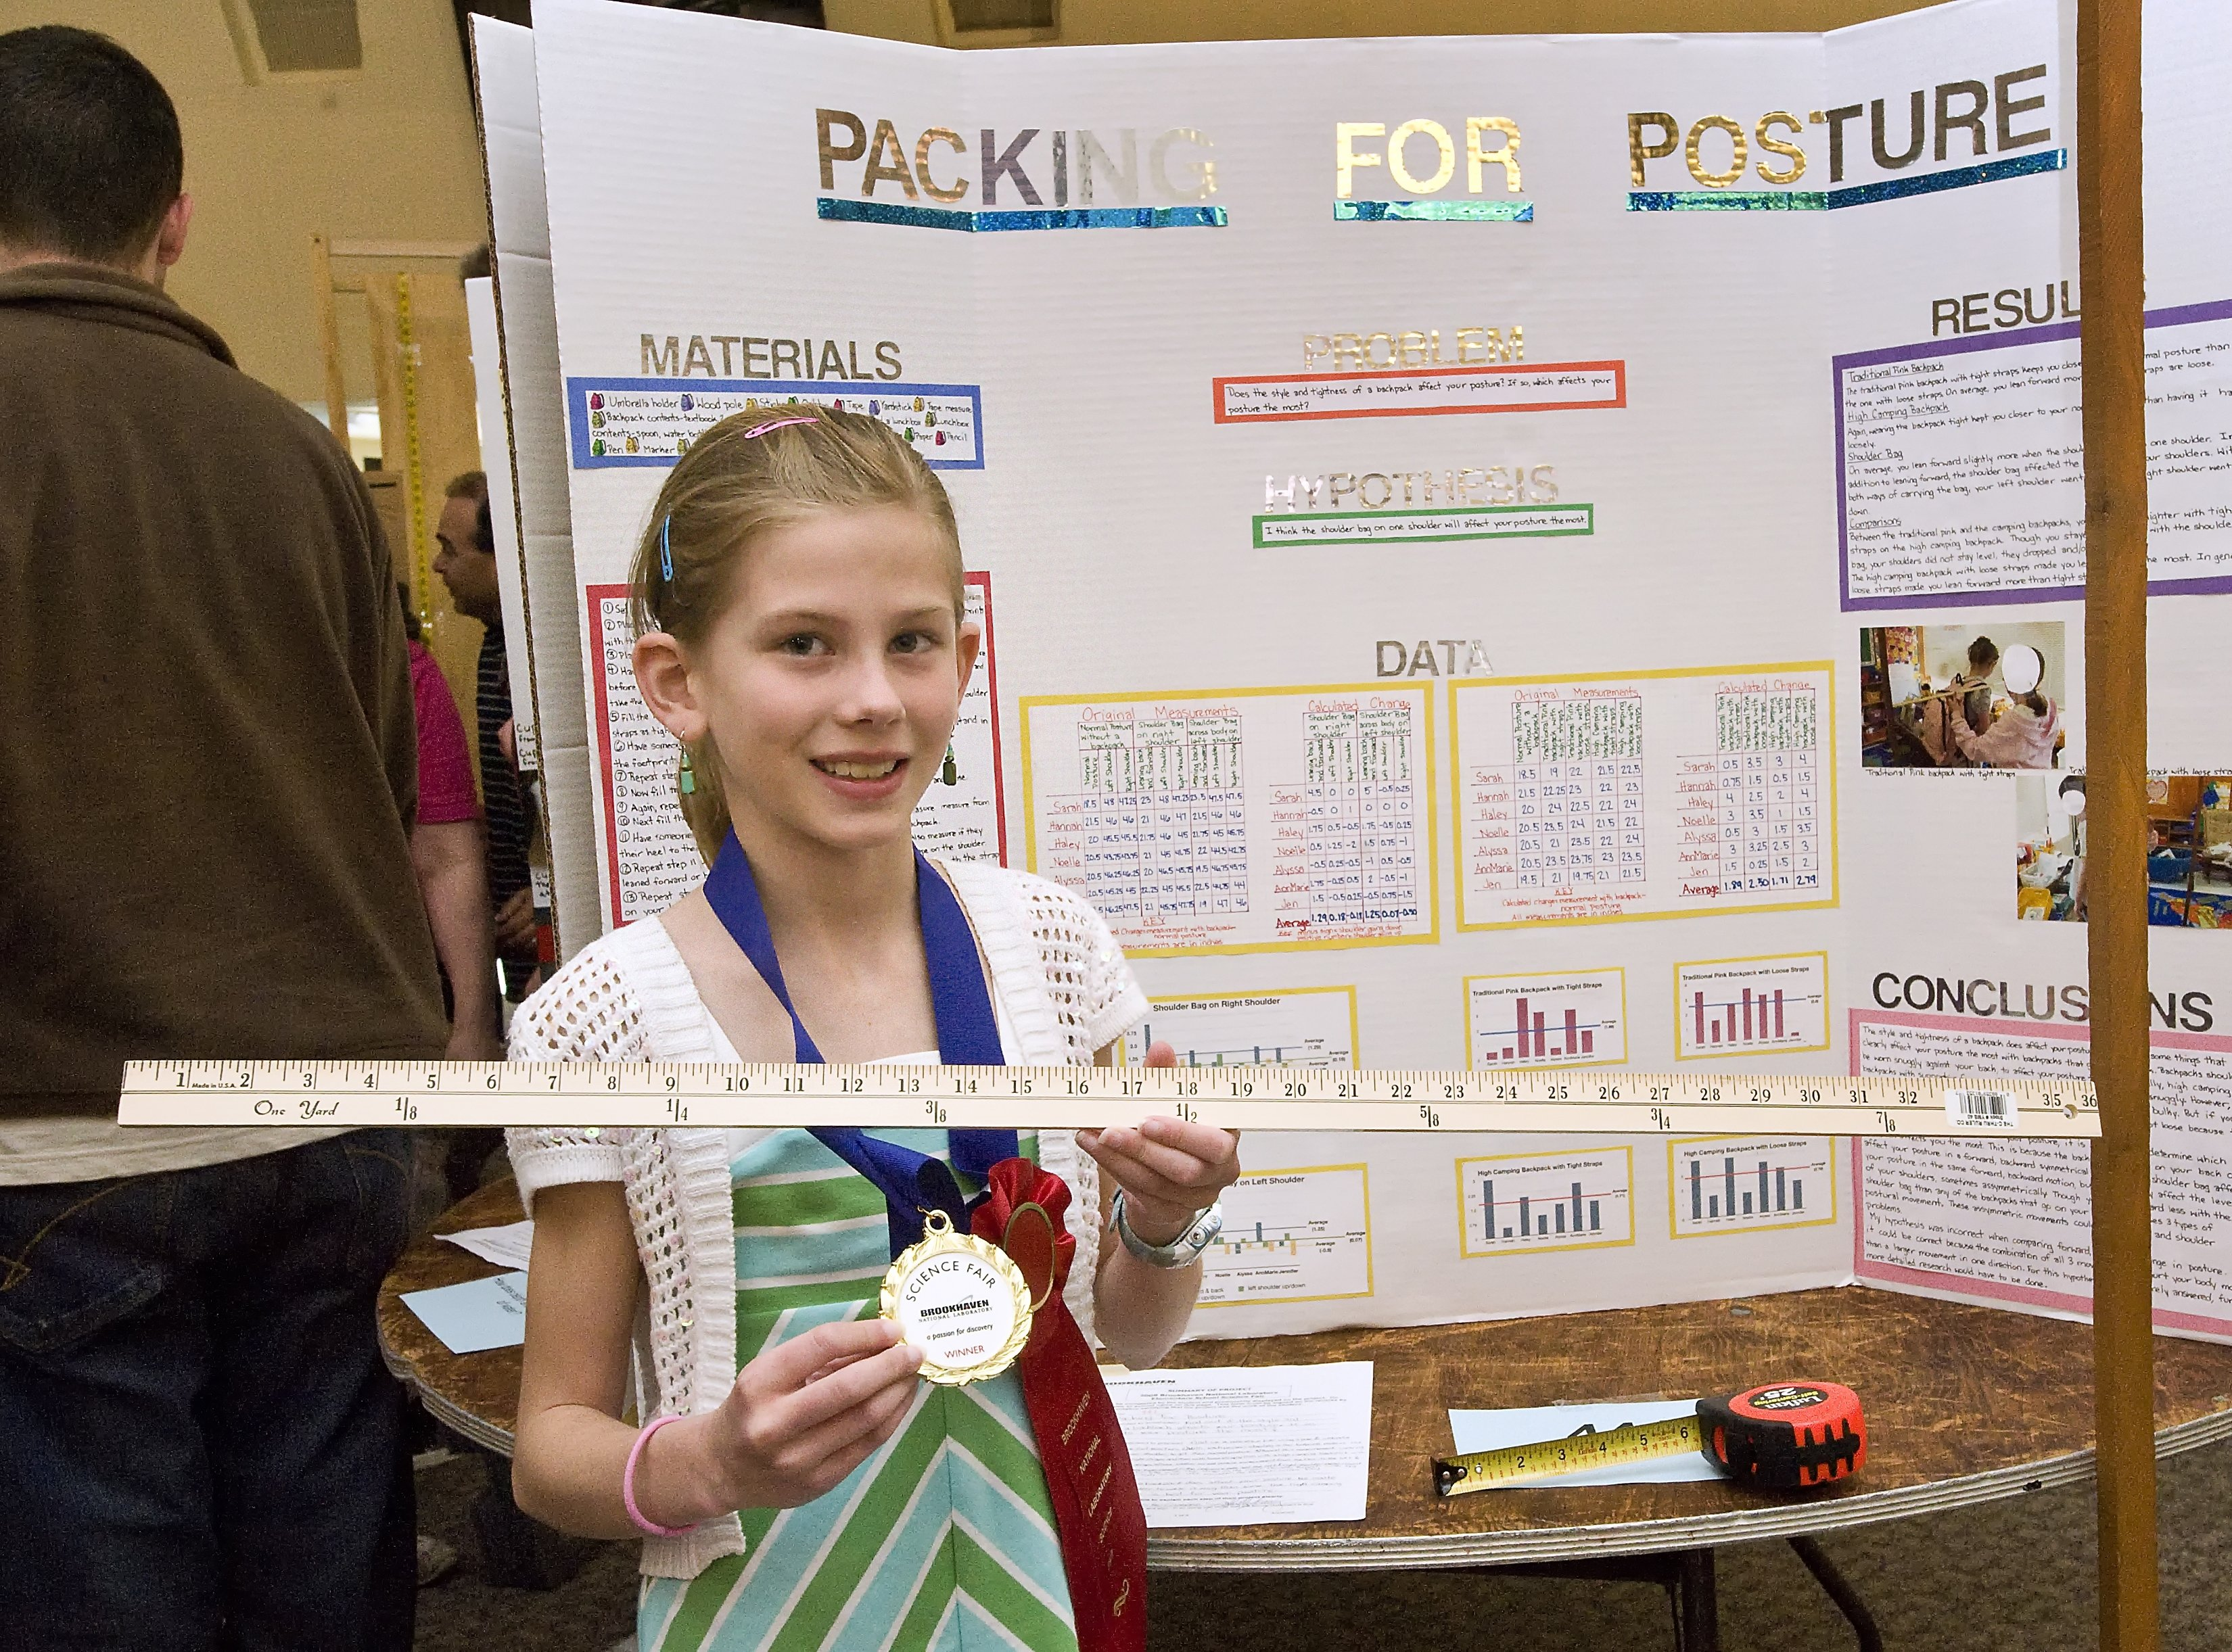 10 Awesome Sports Science Fair Project Ideas from ant control to wind energy winning projects at brookhaven 43